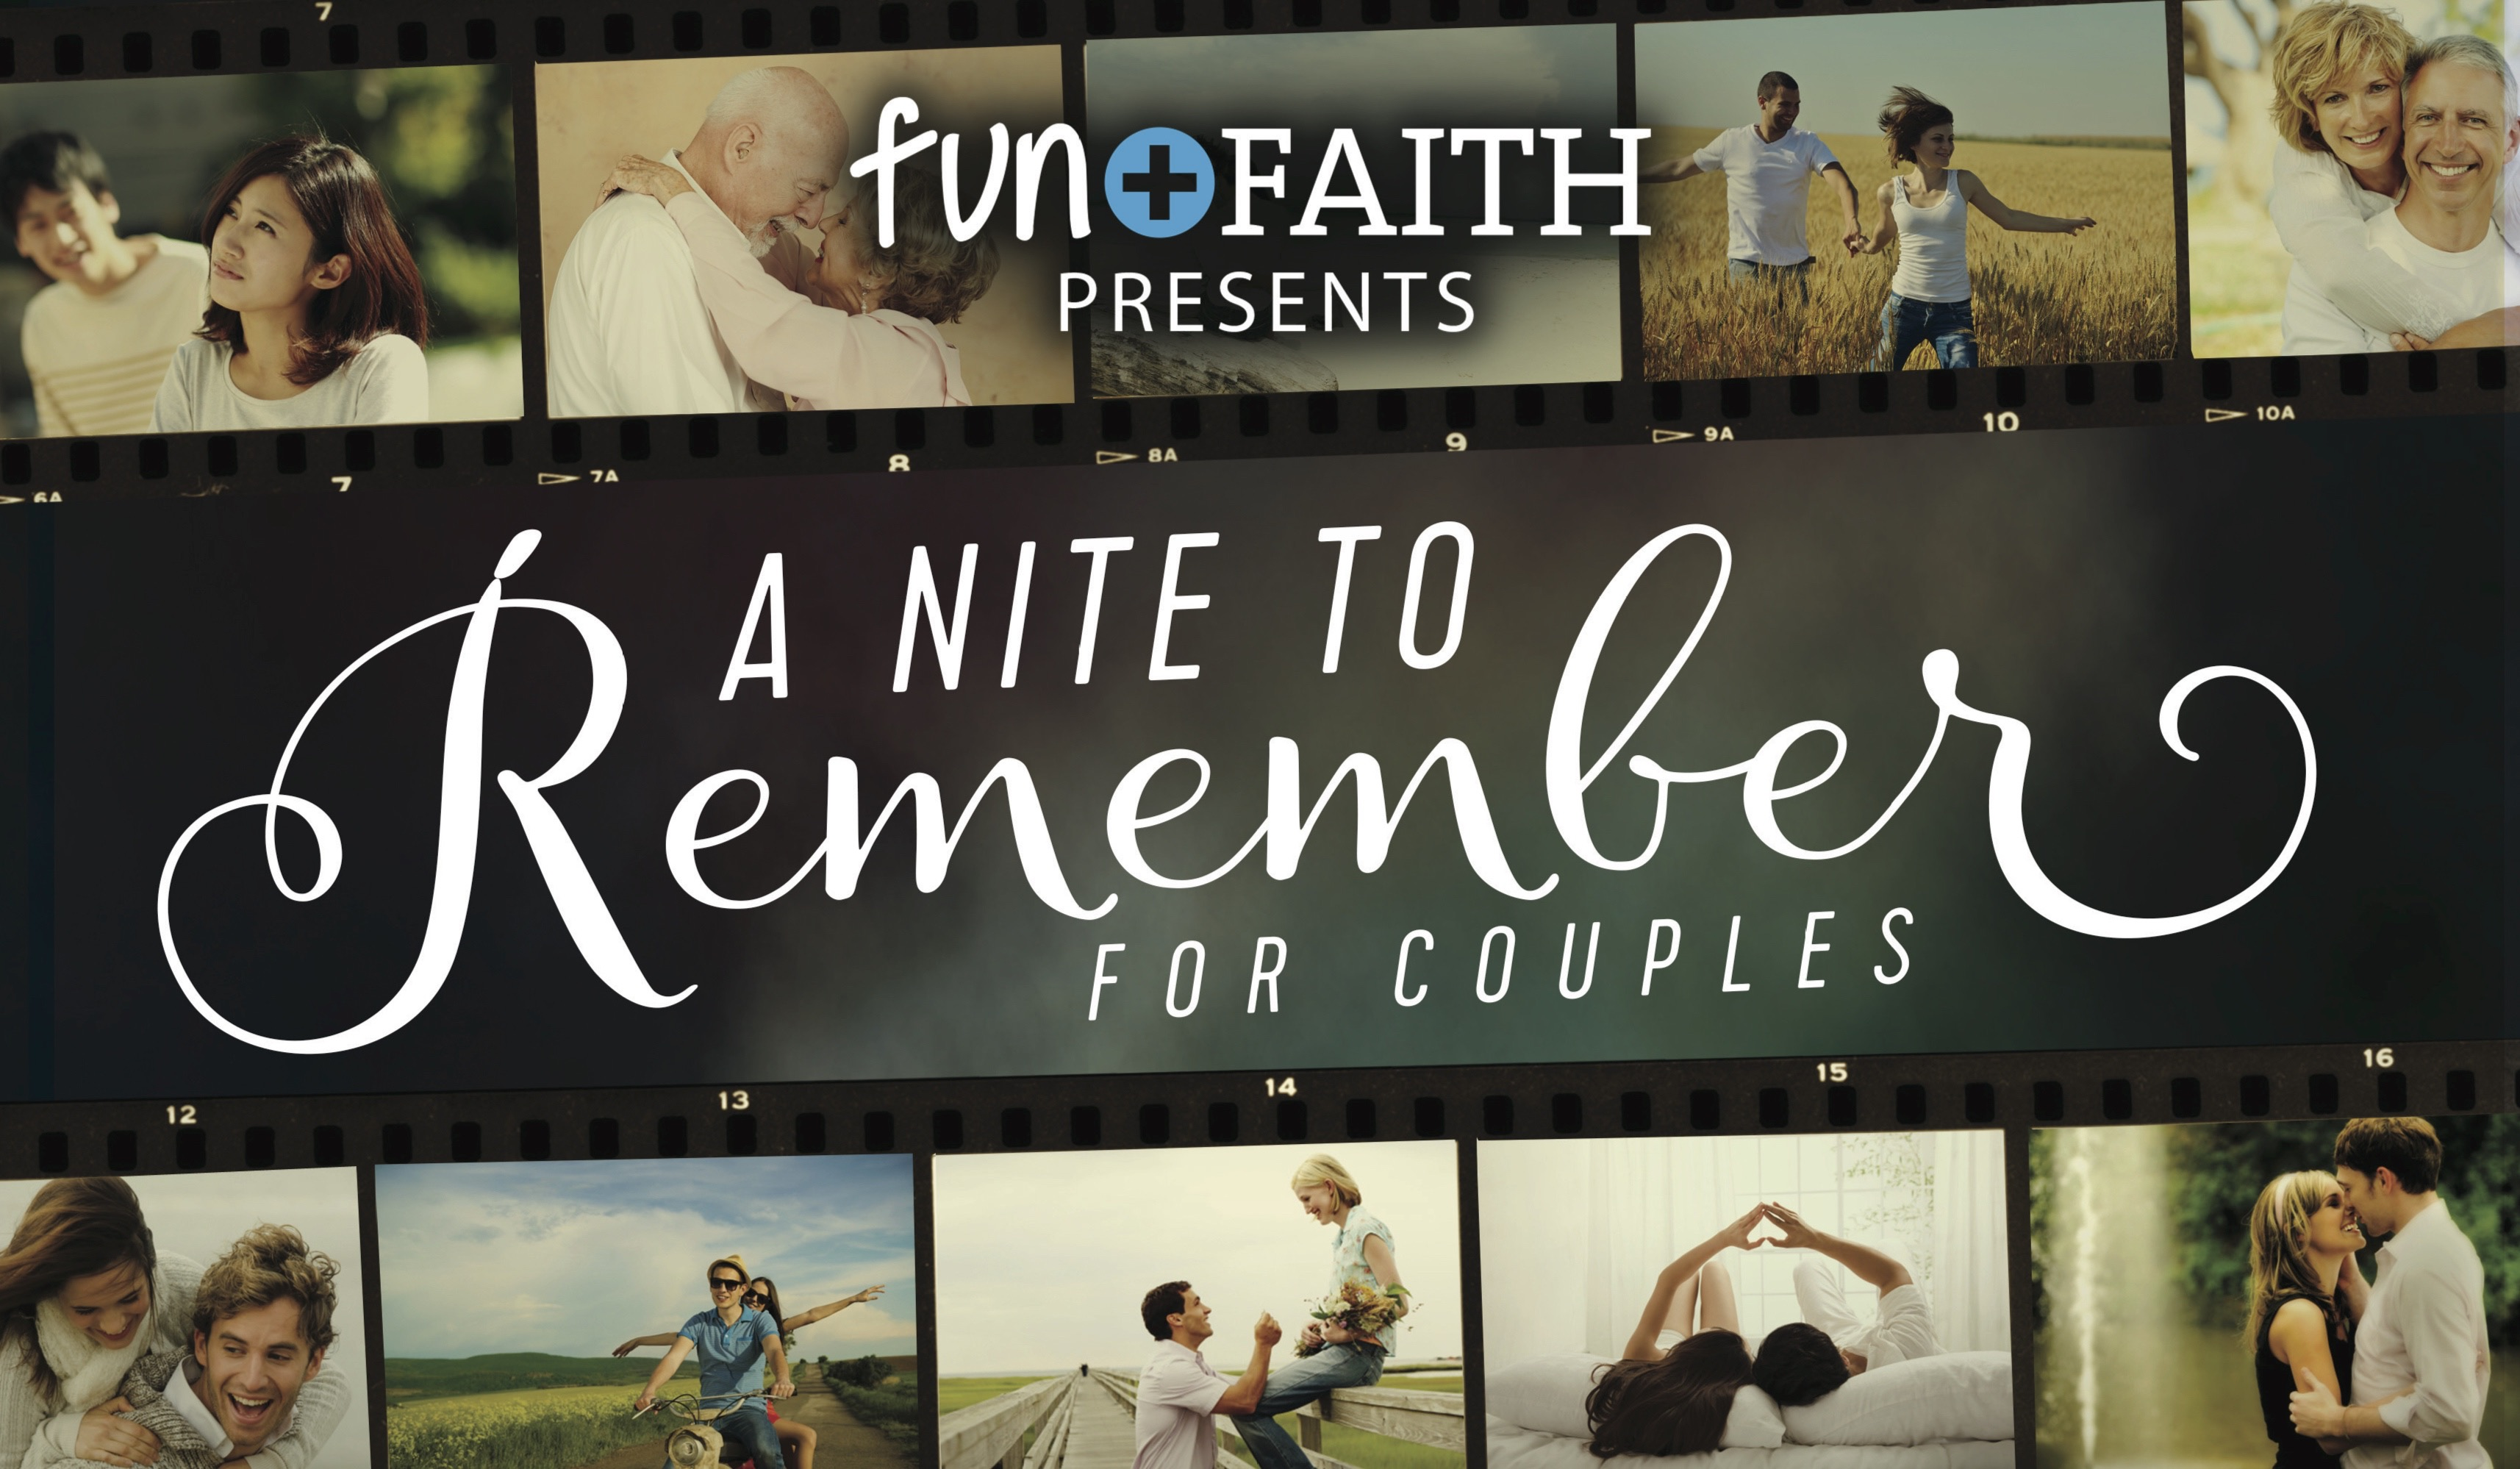 Tickets for A NITE TO Remember FOR COUPLES in Surrey from BuzzTix